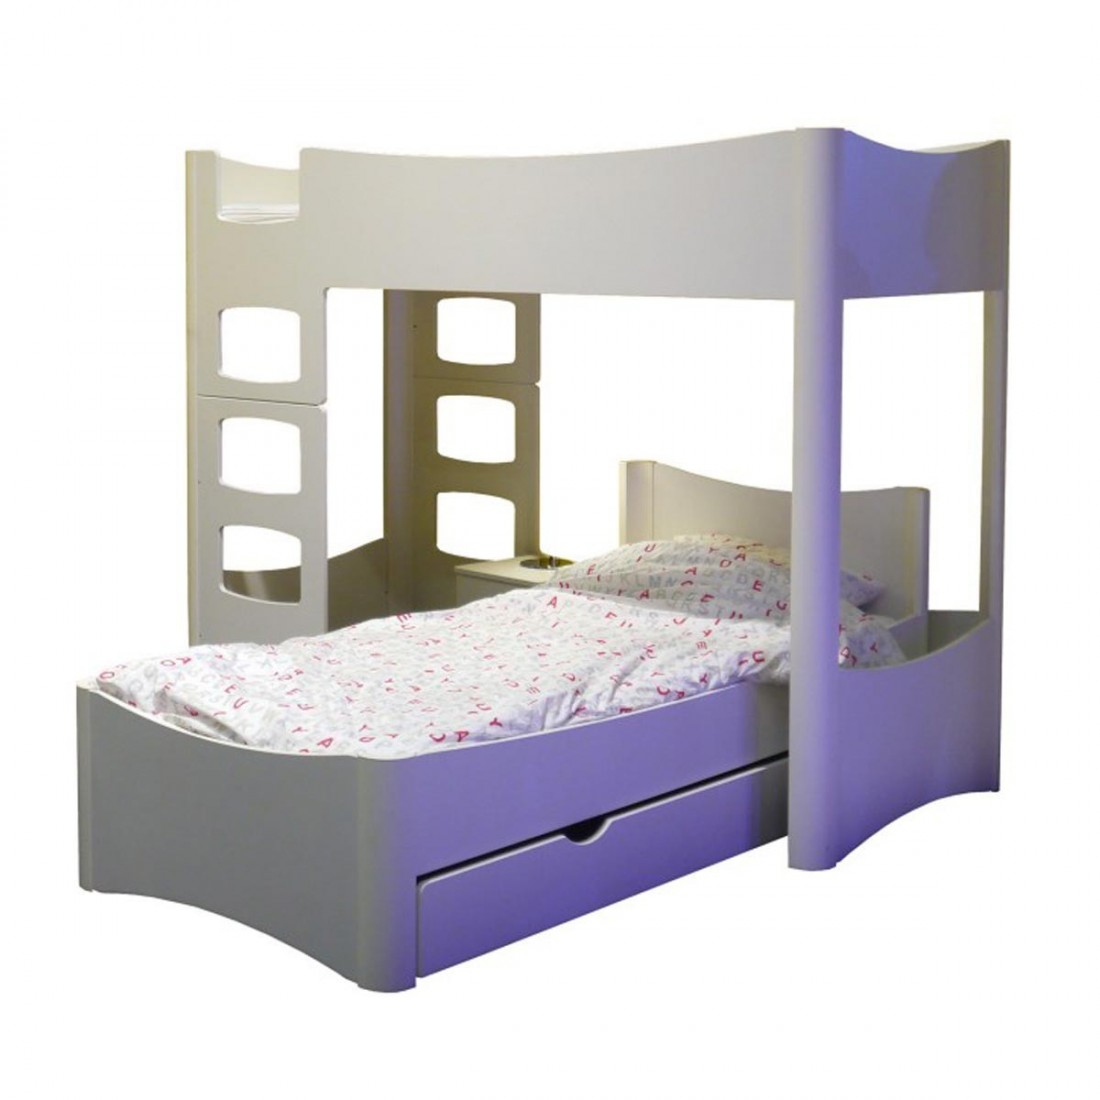 lit enfant sur lev 162 fusion mathy by bols ma chambramoi. Black Bedroom Furniture Sets. Home Design Ideas